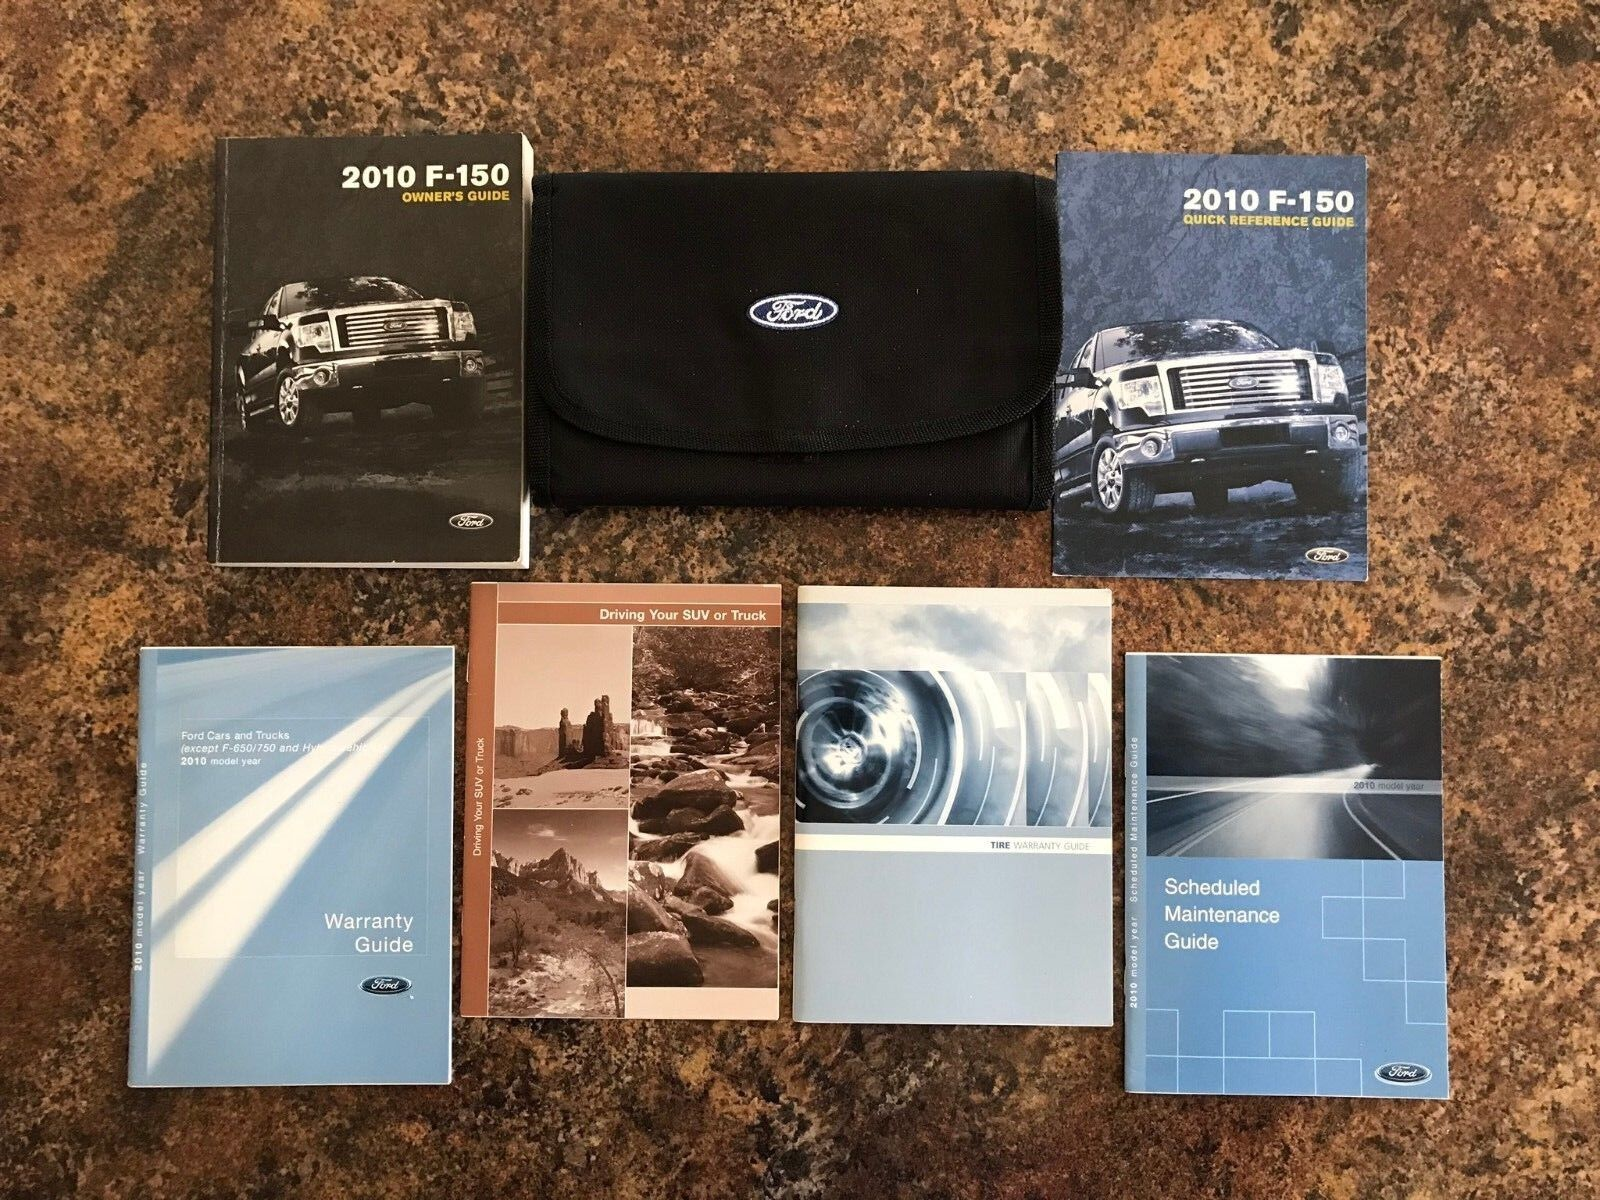 2010 Ford F150 Owners Manual w/ Case & Supplements - #DW ... 1 of 5FREE  Shipping 2010 Ford F150 Owners Manual ...